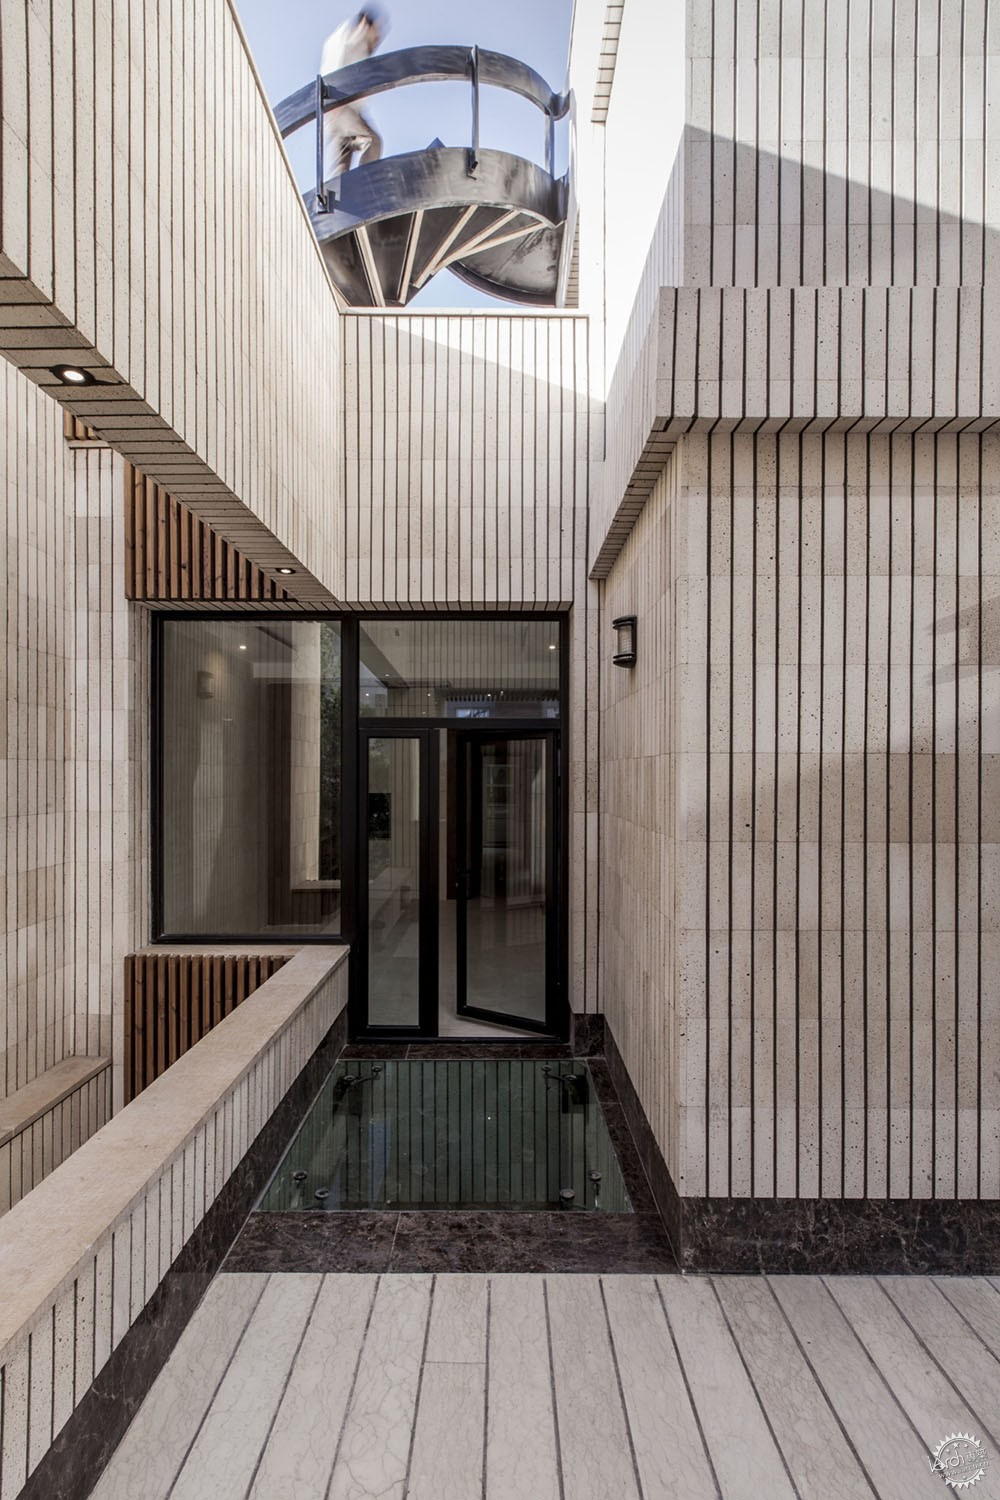 梅赫拉巴德小屋/ Sarsayeh Architectural Office第5张图片